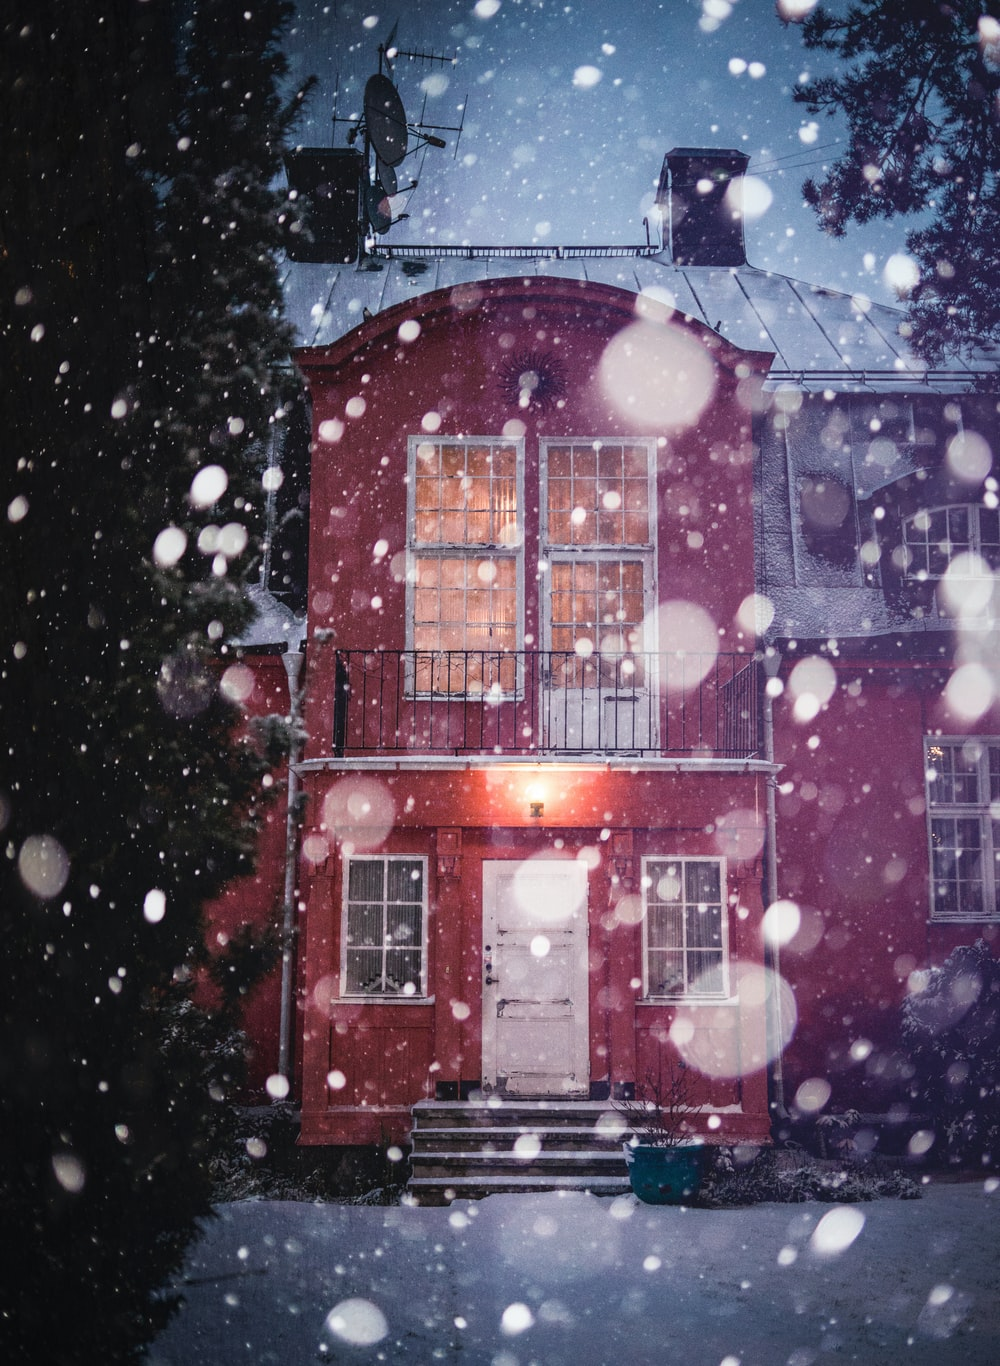 red and white house with snow on roof